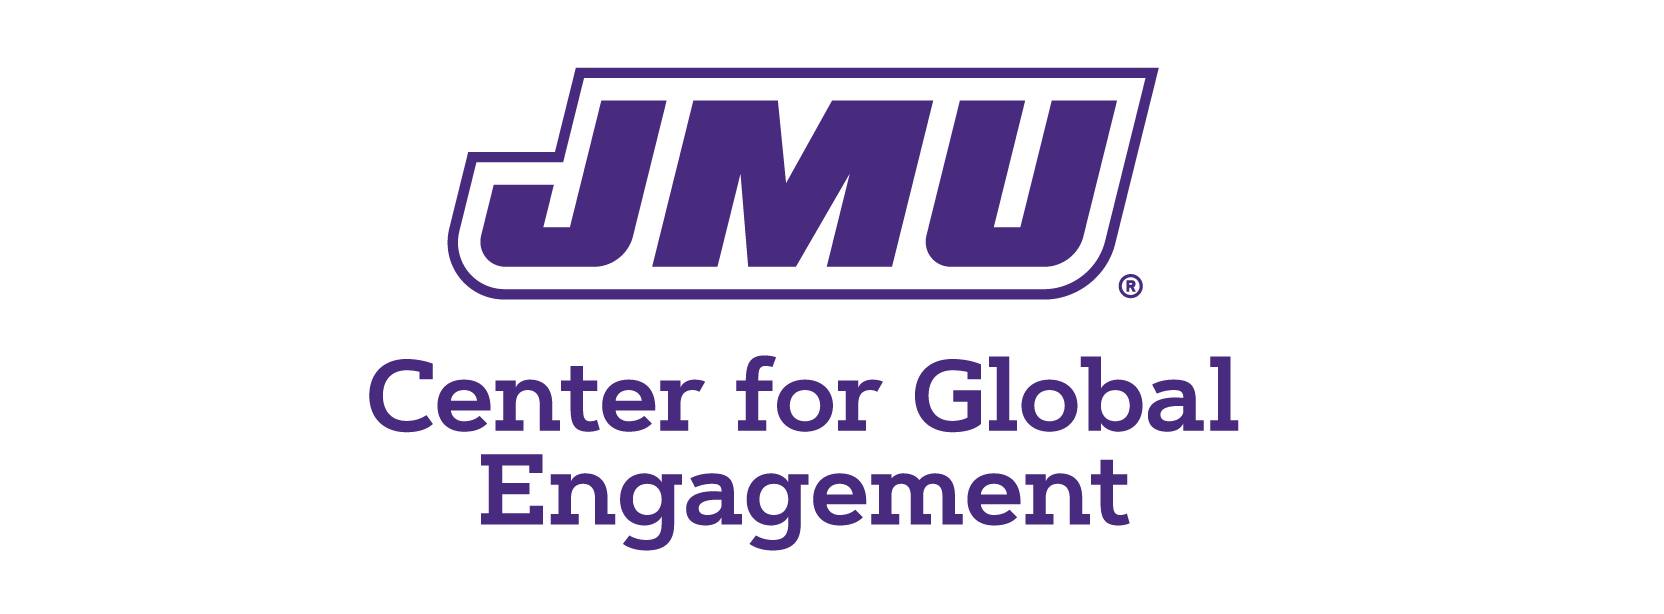 JMU Center for Global Engagement